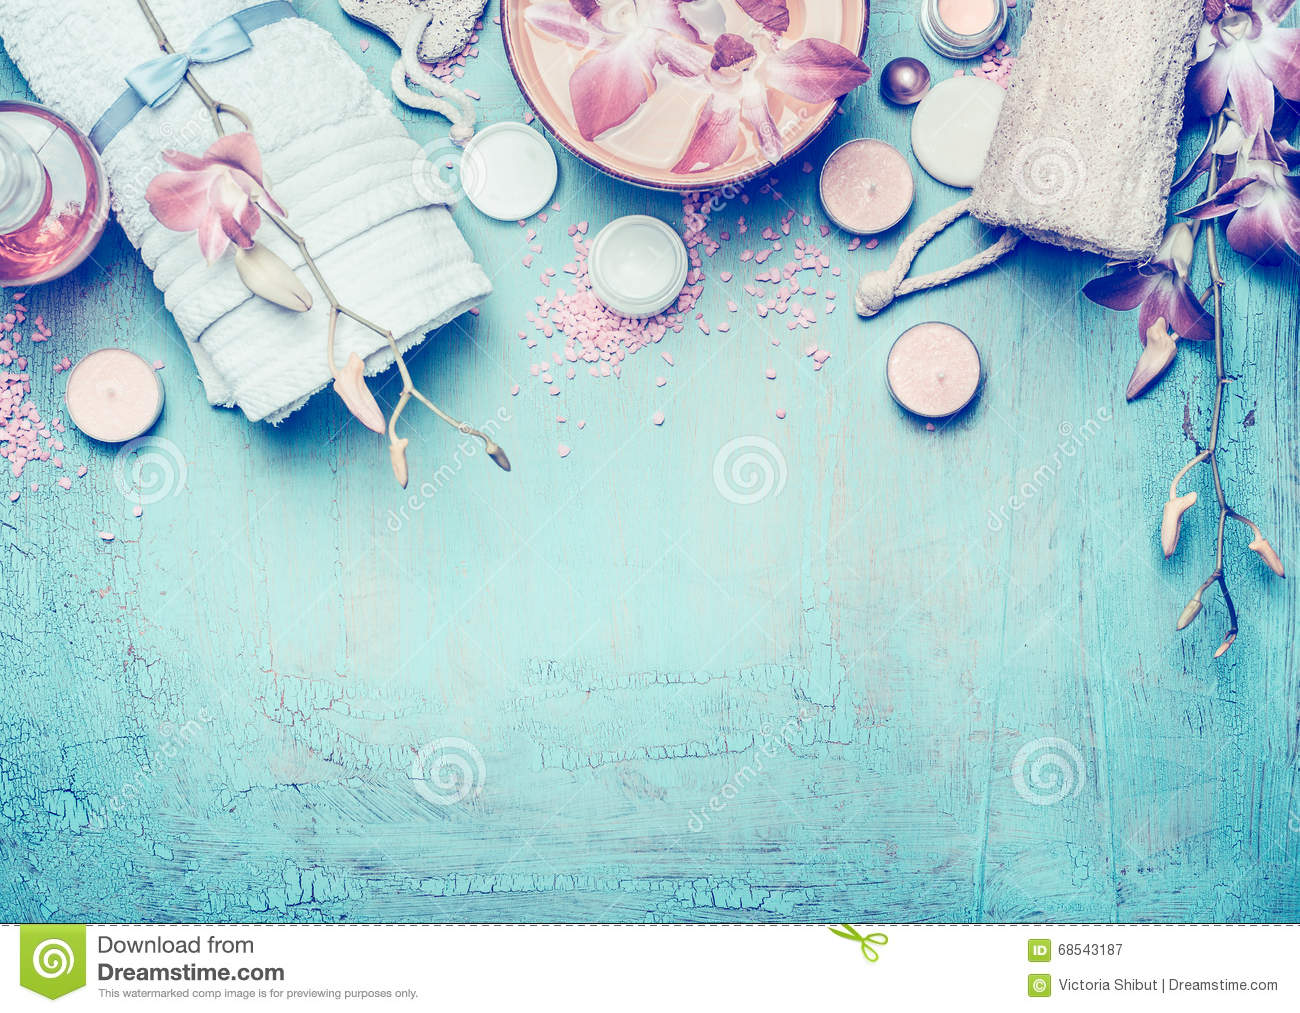 Background image body - Body Care Tools On Blue Turquoise Shabby Chic Background Top View Spa Or Wellness Setting